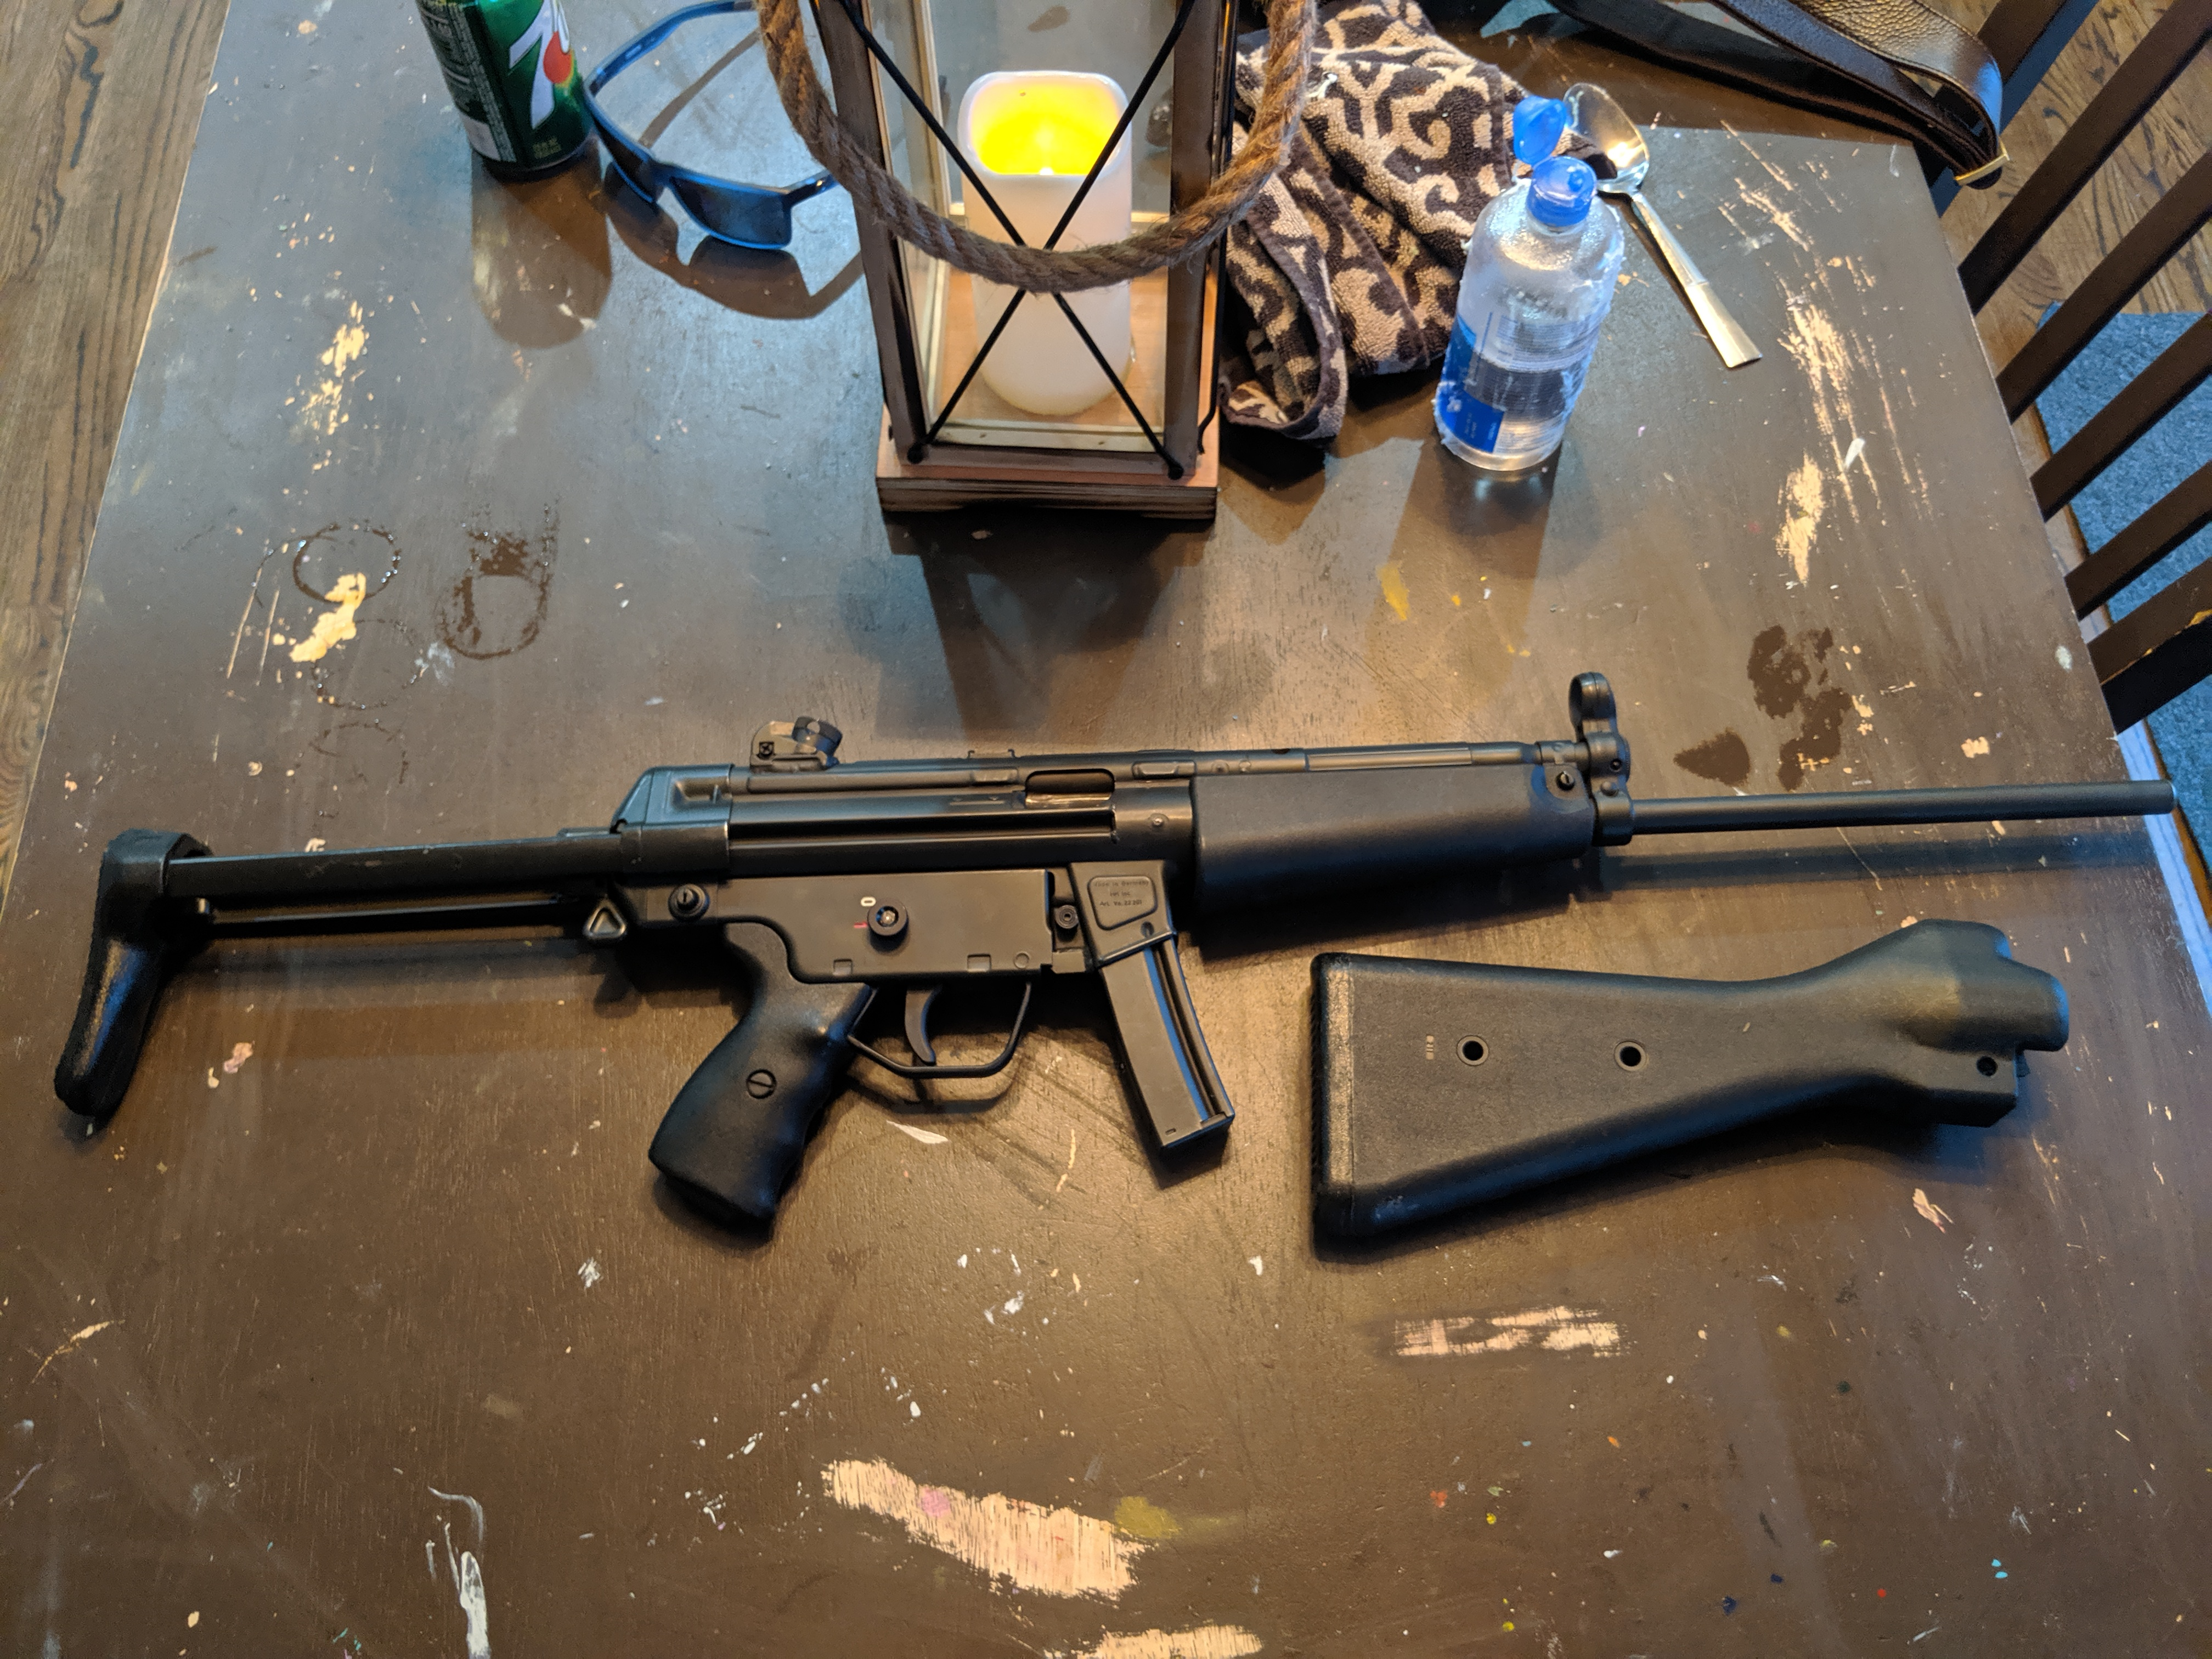 WTS: HK 94a3 for sale 4000.00-img_20190913_192953_1568452611538.jpg